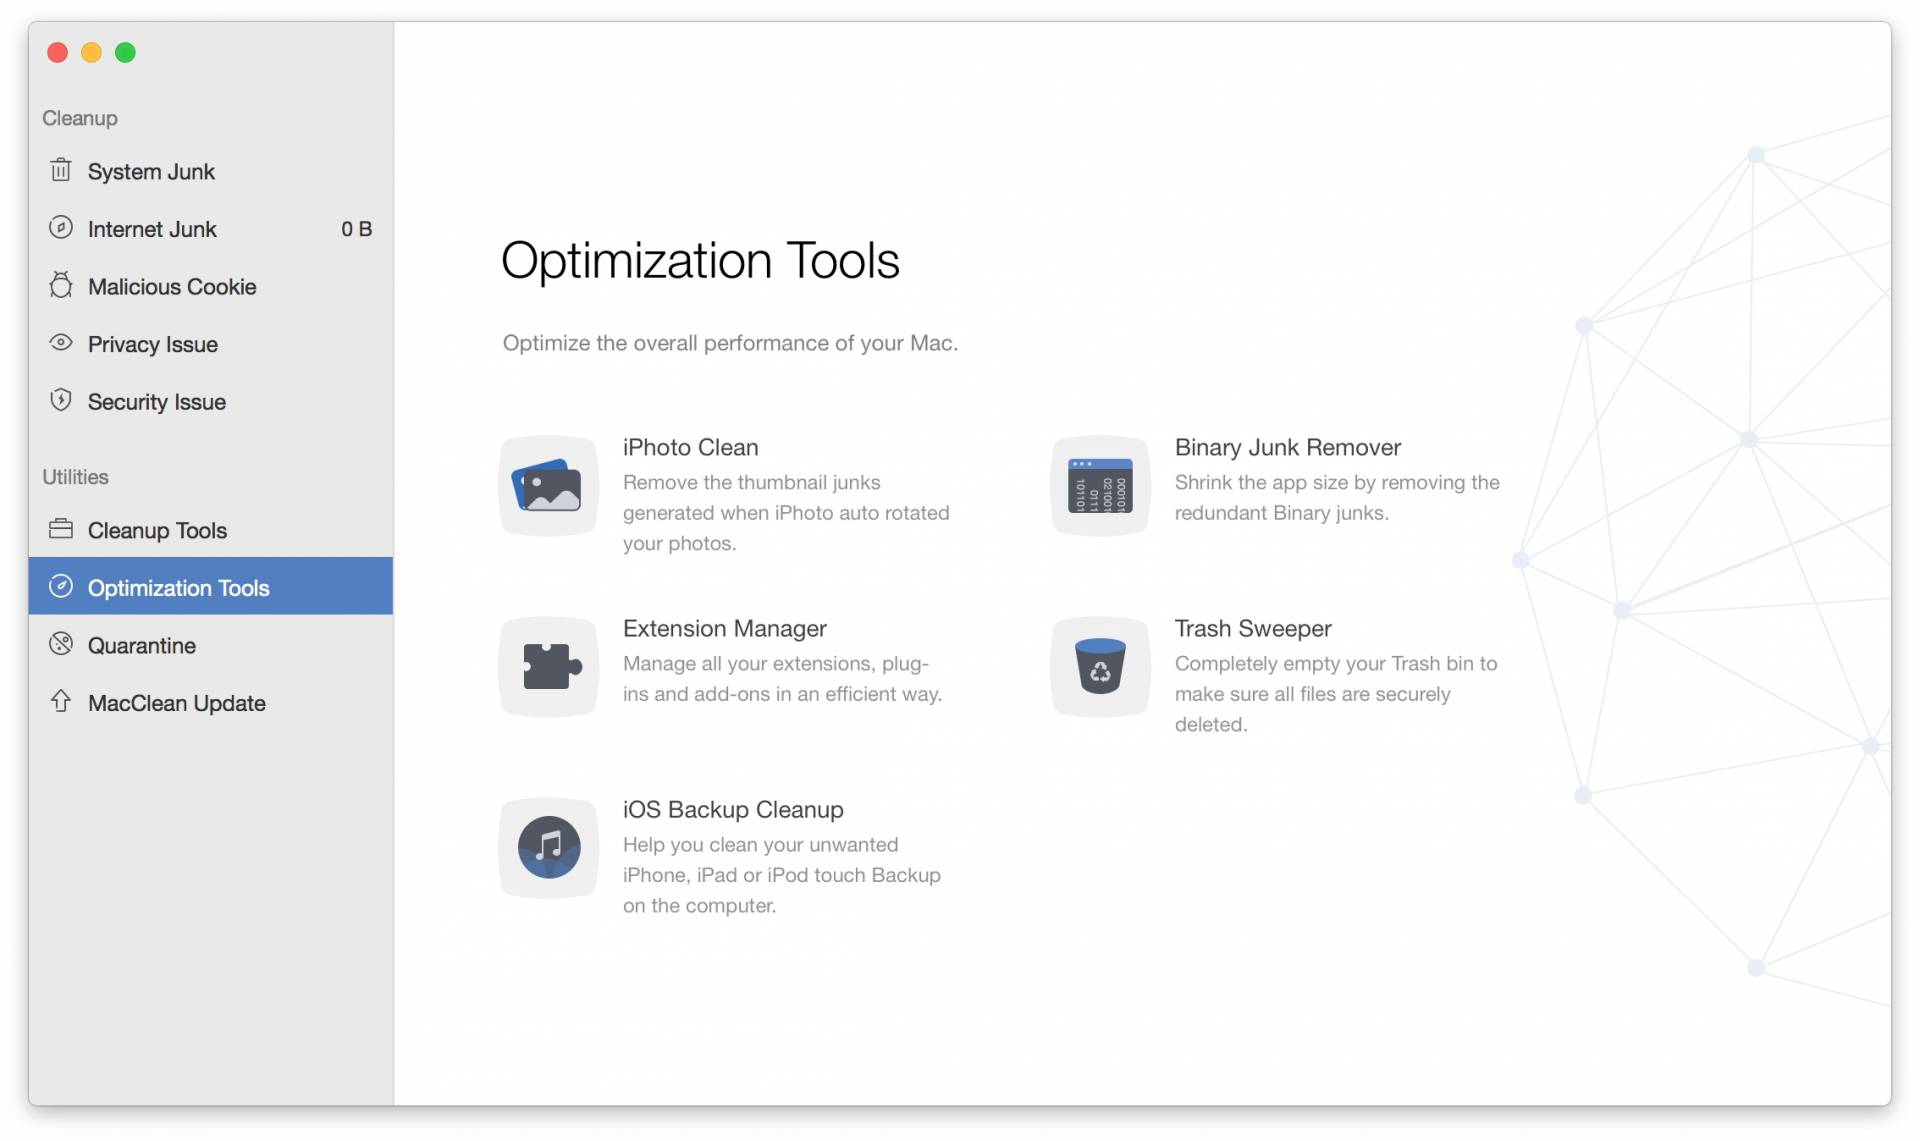 Optimization Tools